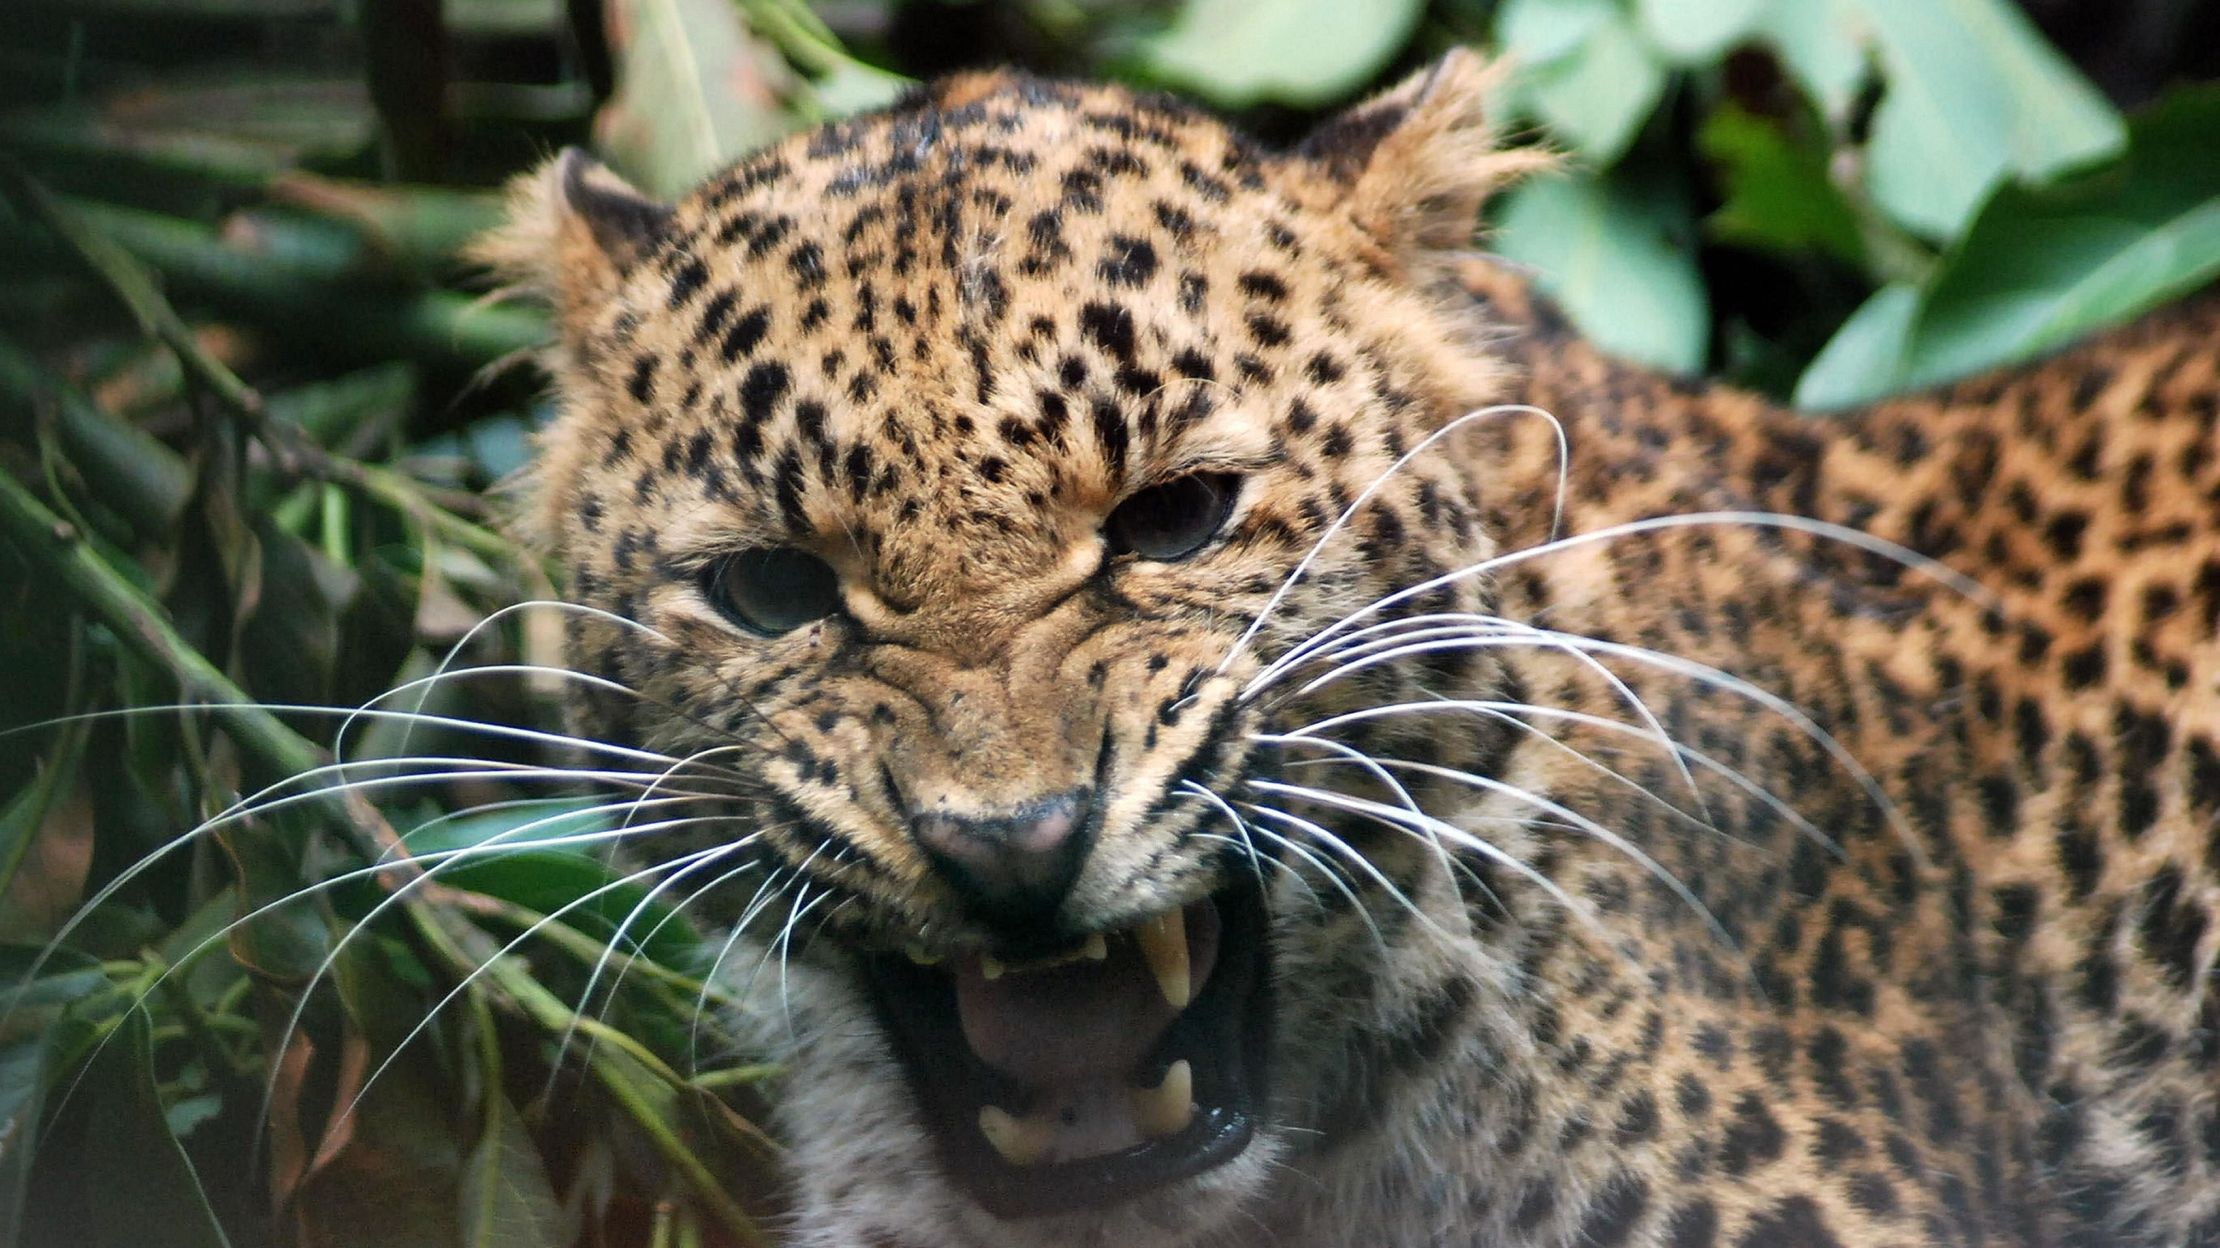 Cheetah vs. Leopard: What's the Difference? | Mental Floss